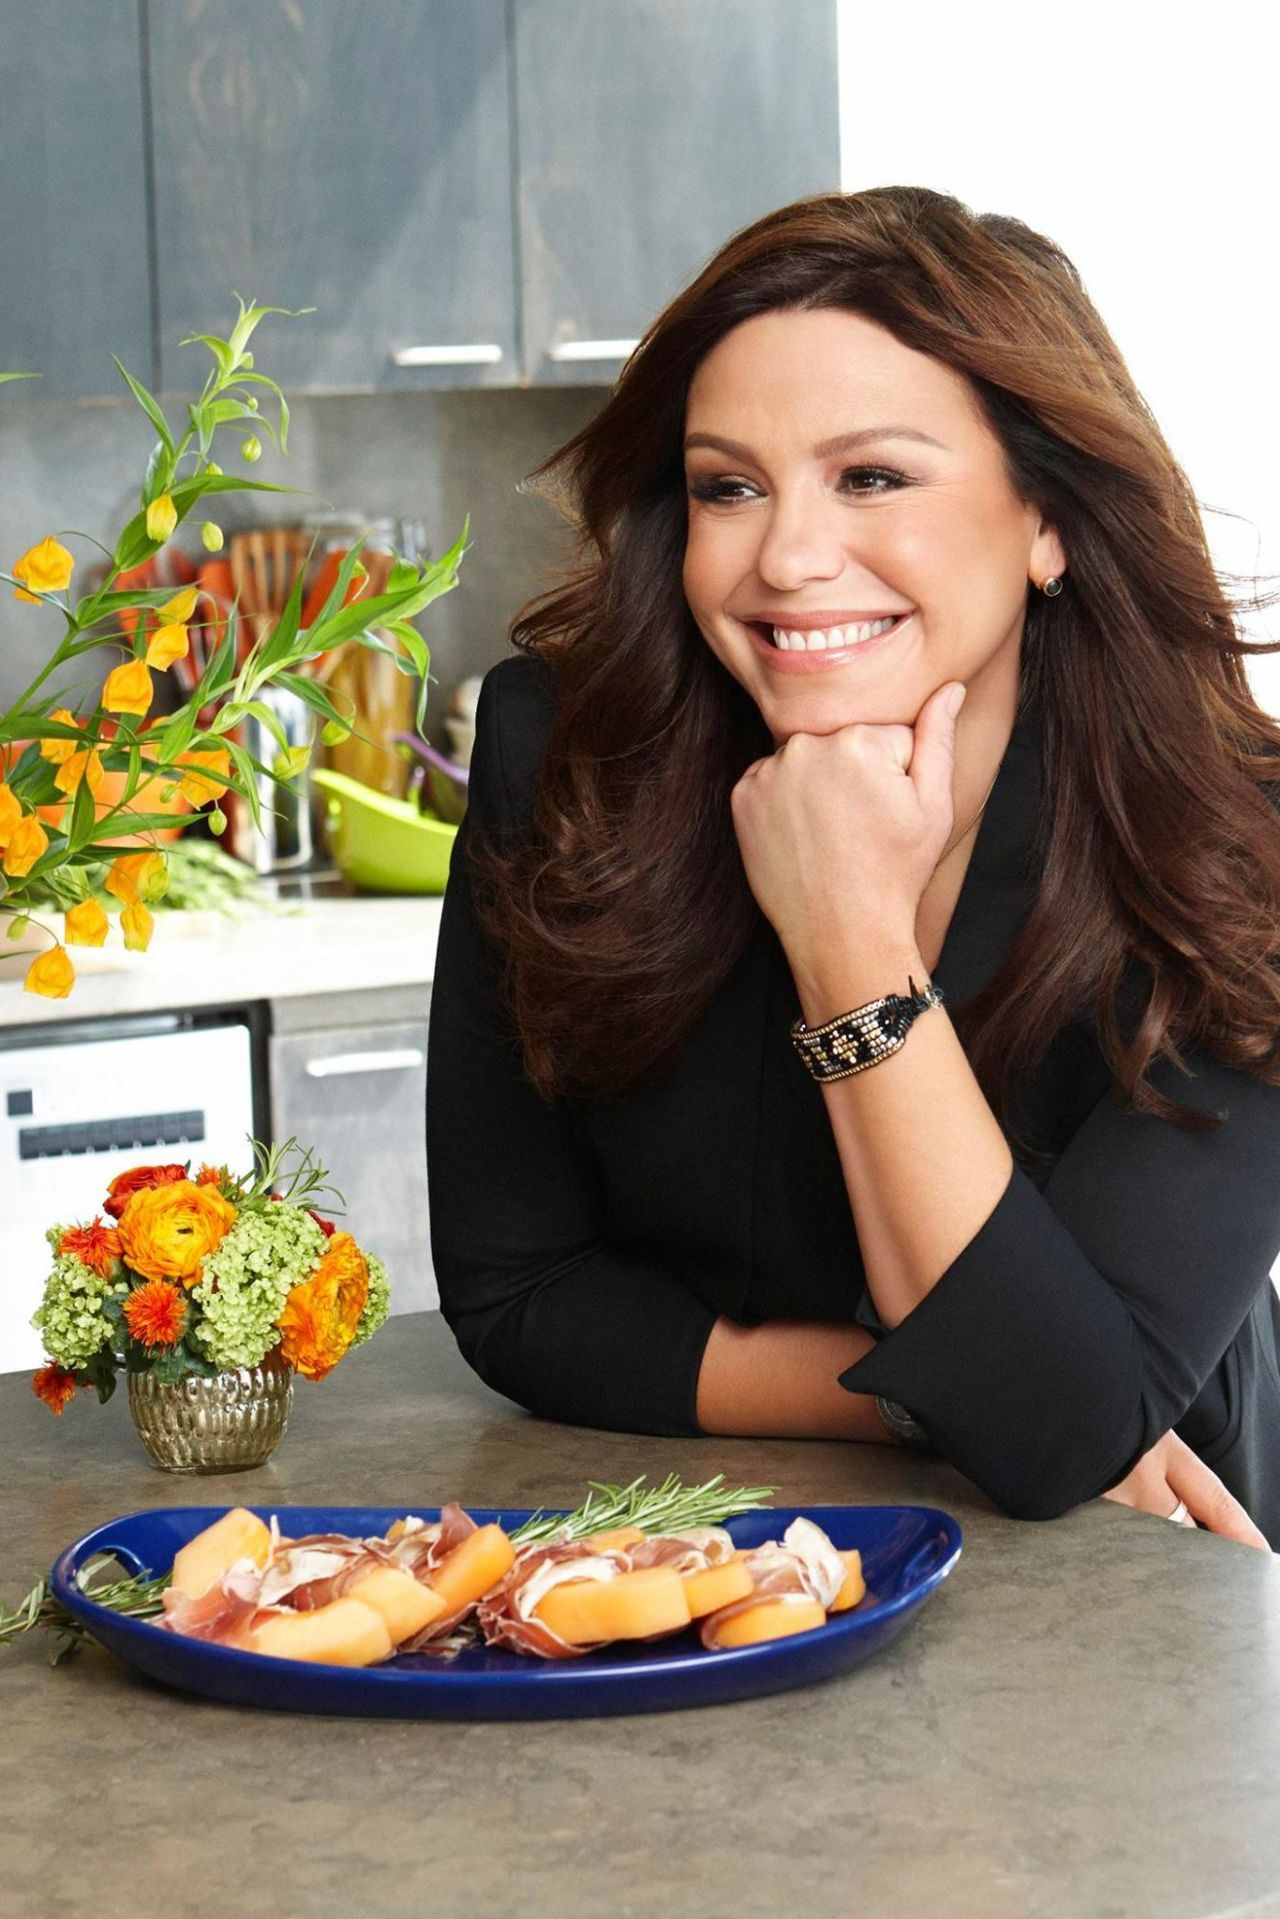 Healthy Cooking Tips From Your Favorite Celebrity Chefs